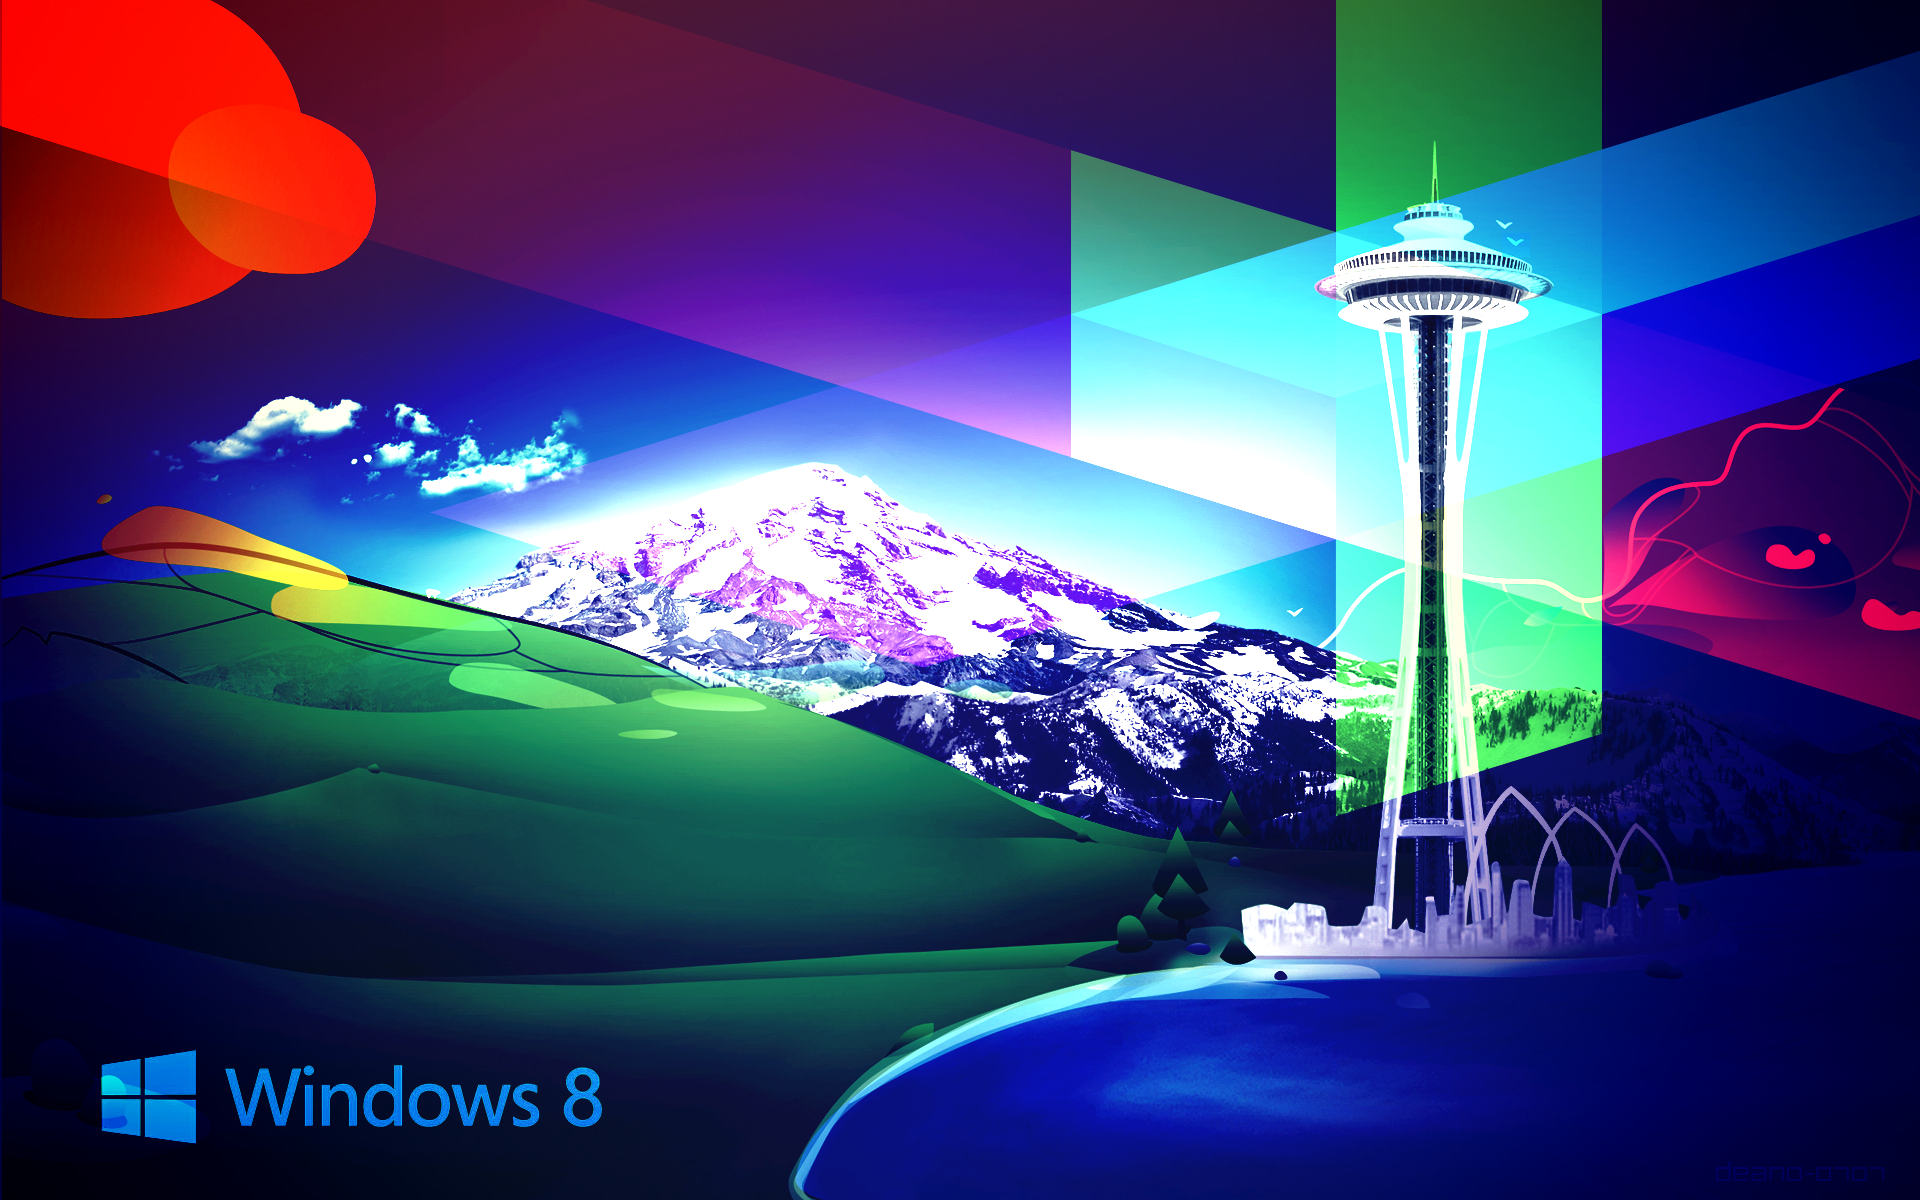 Full Color Windows 8 Wallpaper PC